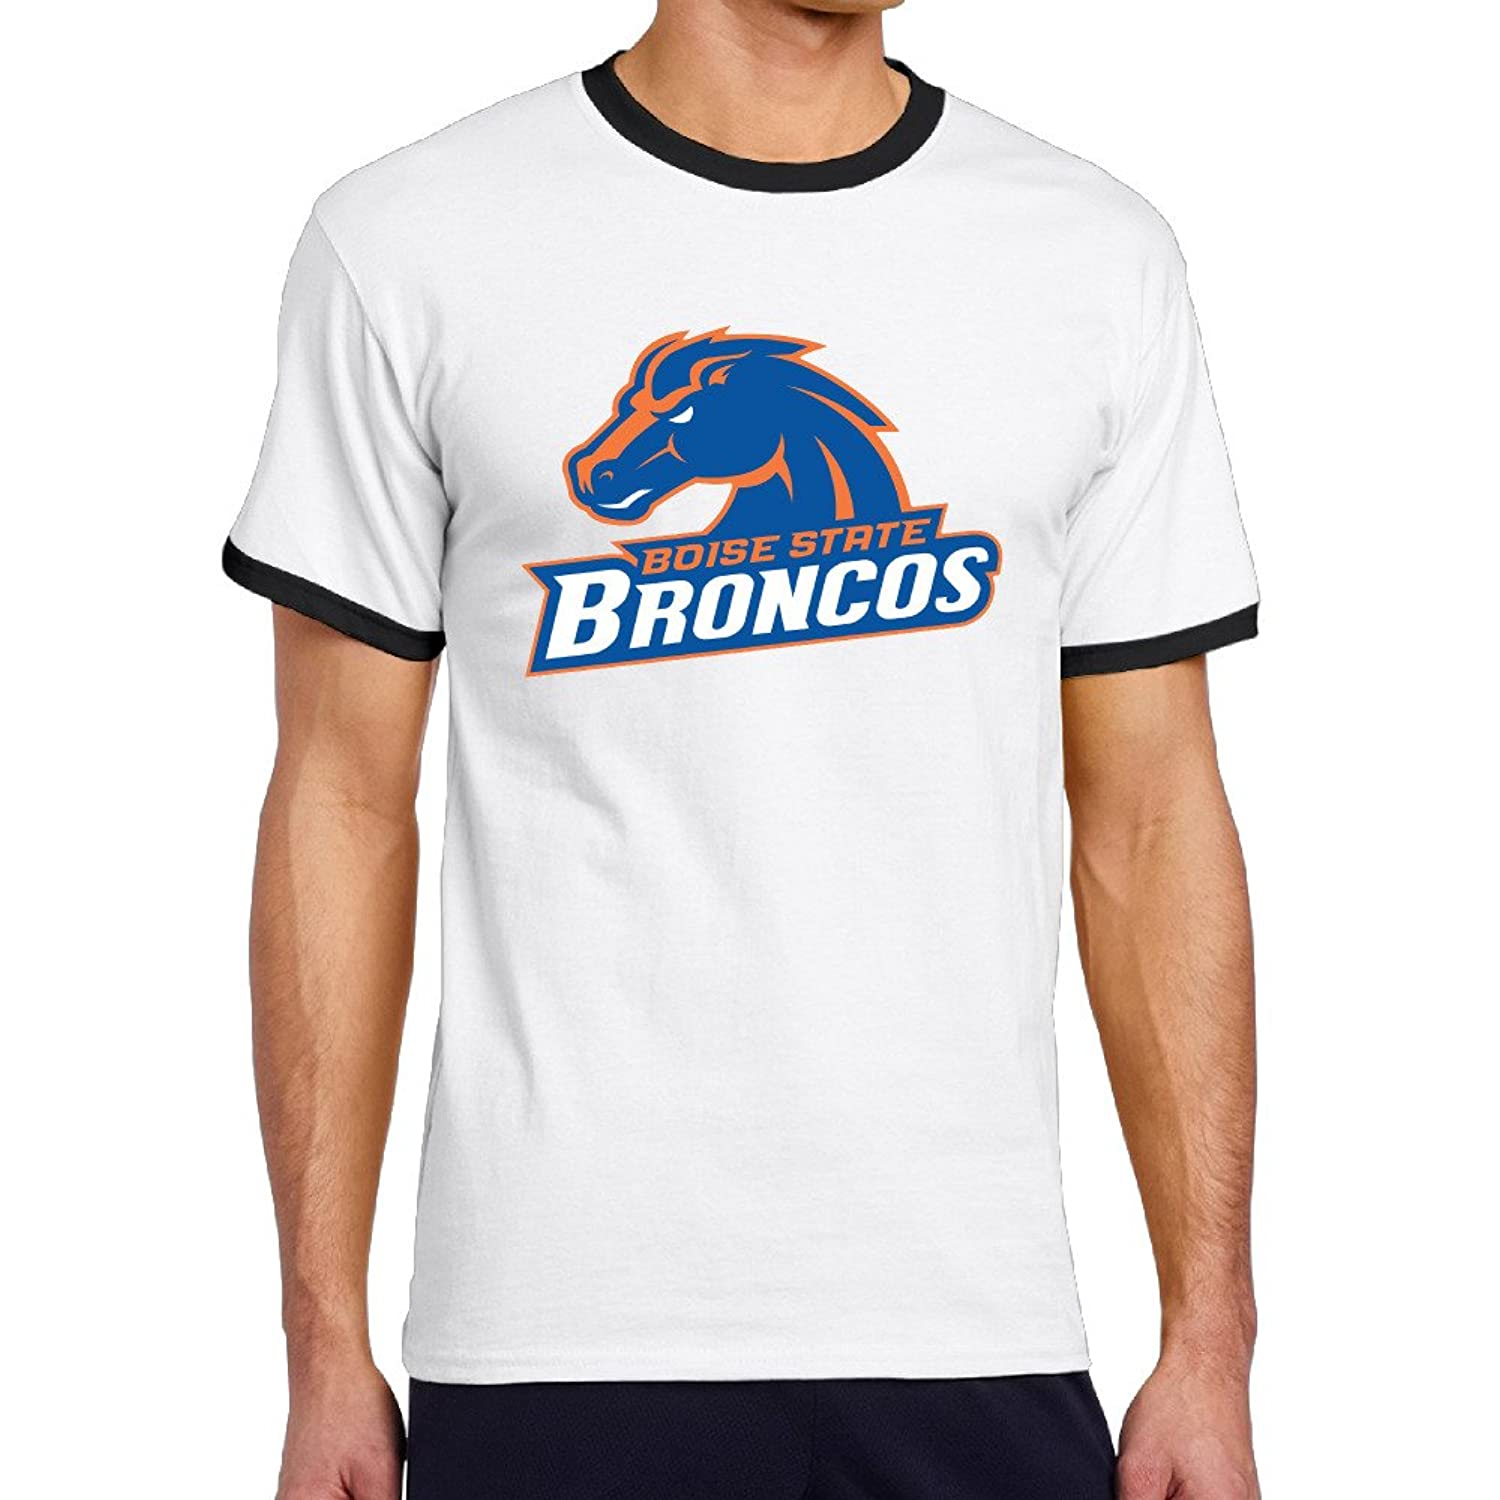 Wg men 39 s two toned t shirts cool boise state university for Boise t shirt printing